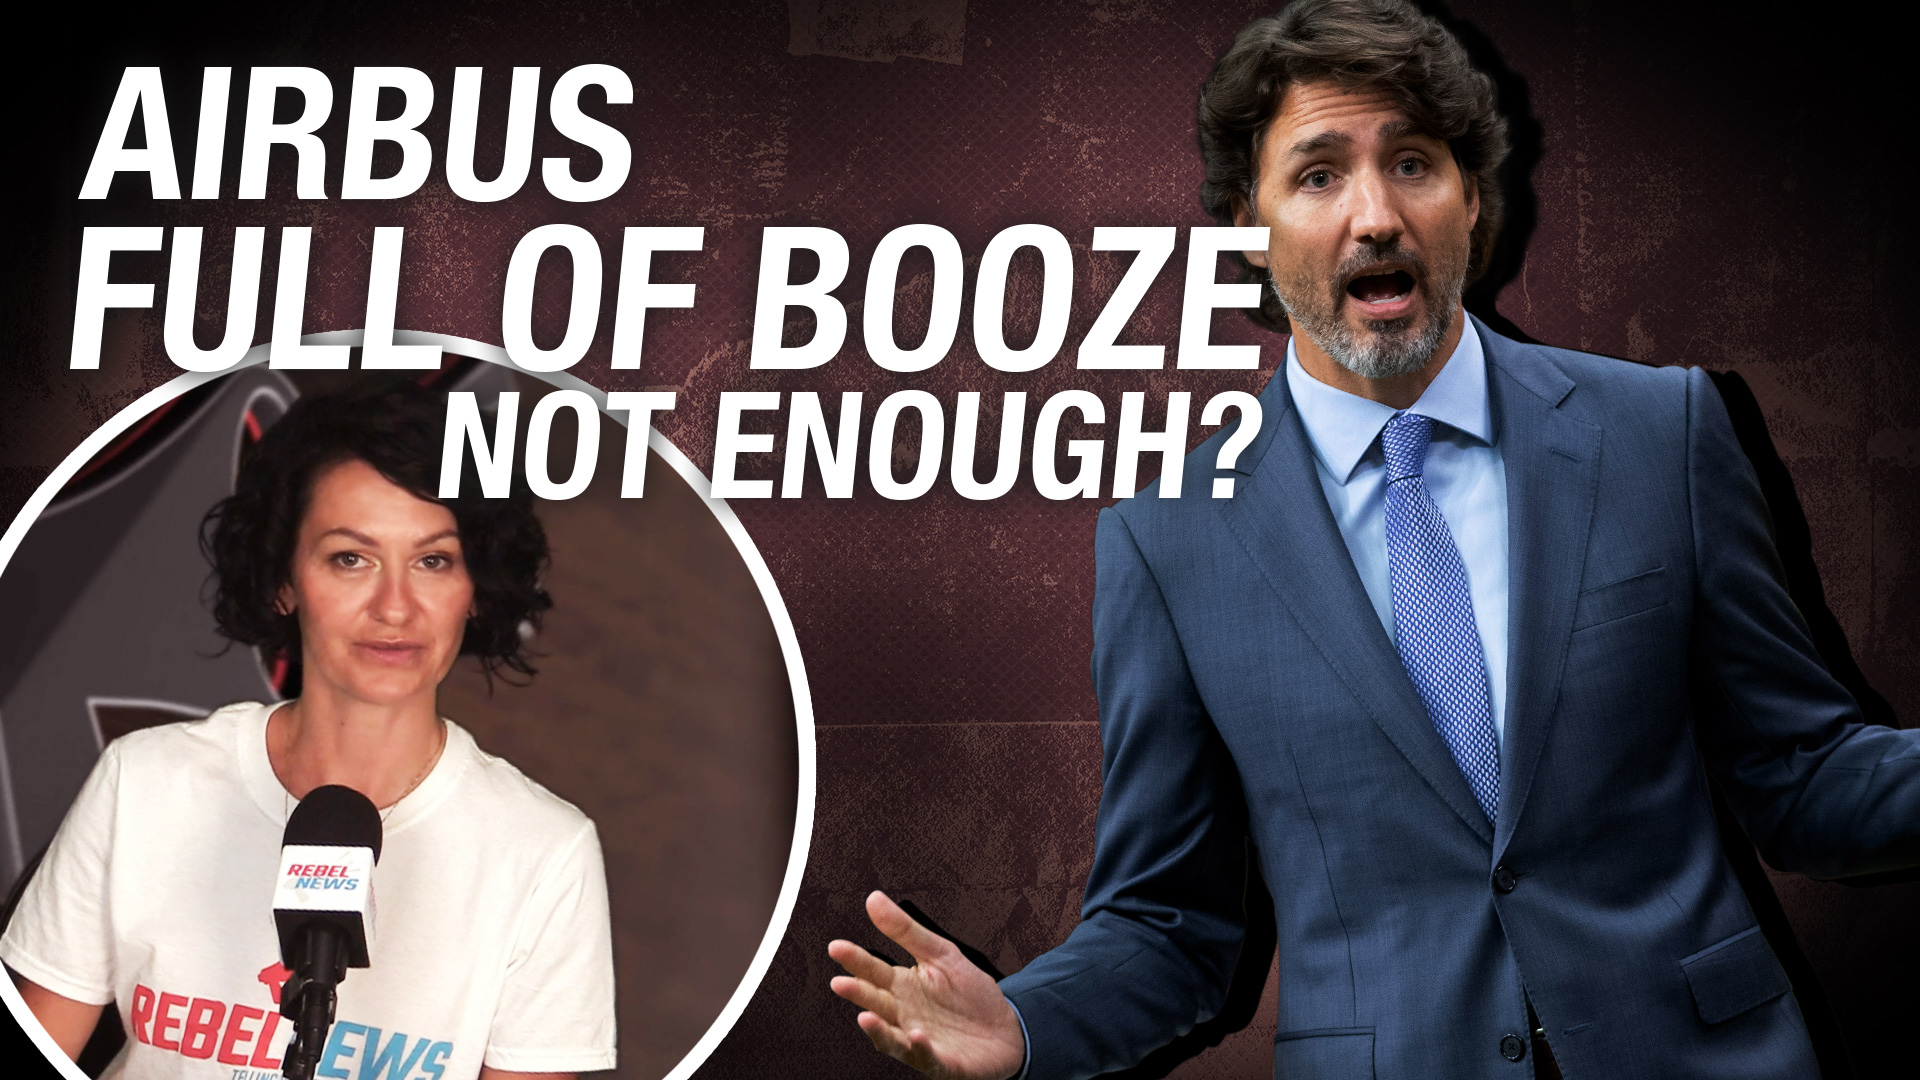 Airbus too small to carry Trudeau's liquor order: India Trip 2018 Planning Emails